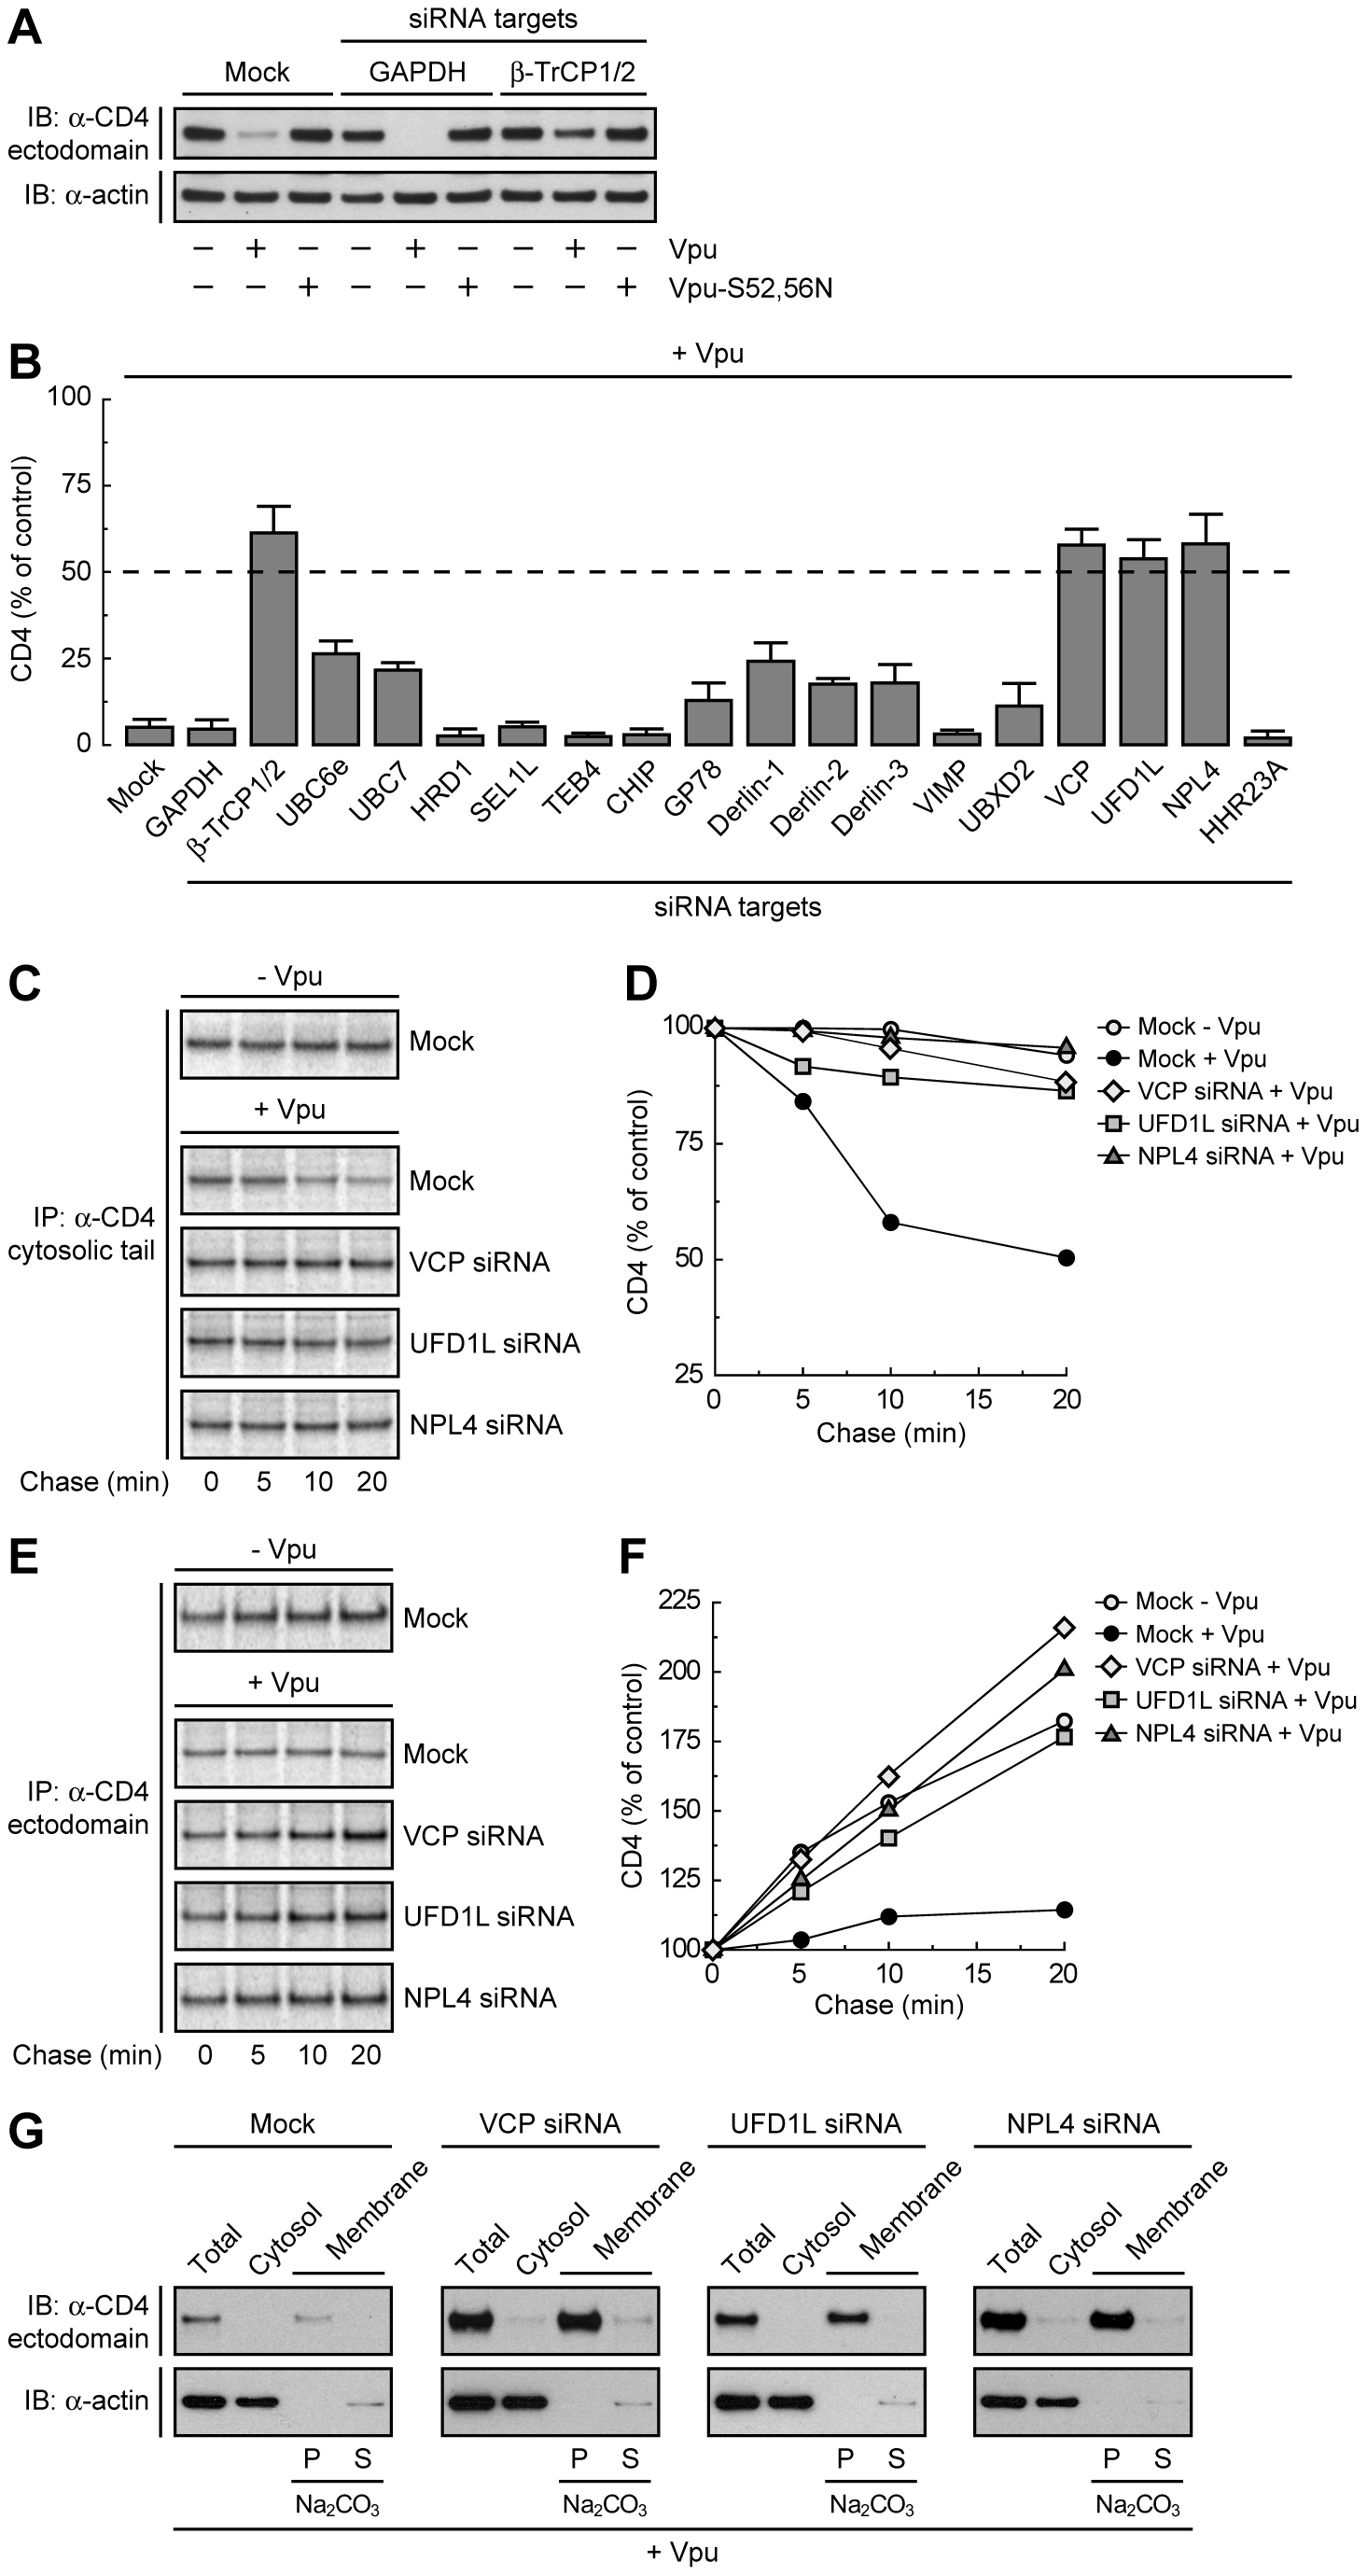 The VCP-UFD1L-NPL4 complex mediates Vpu-dependent CD4 degradation.